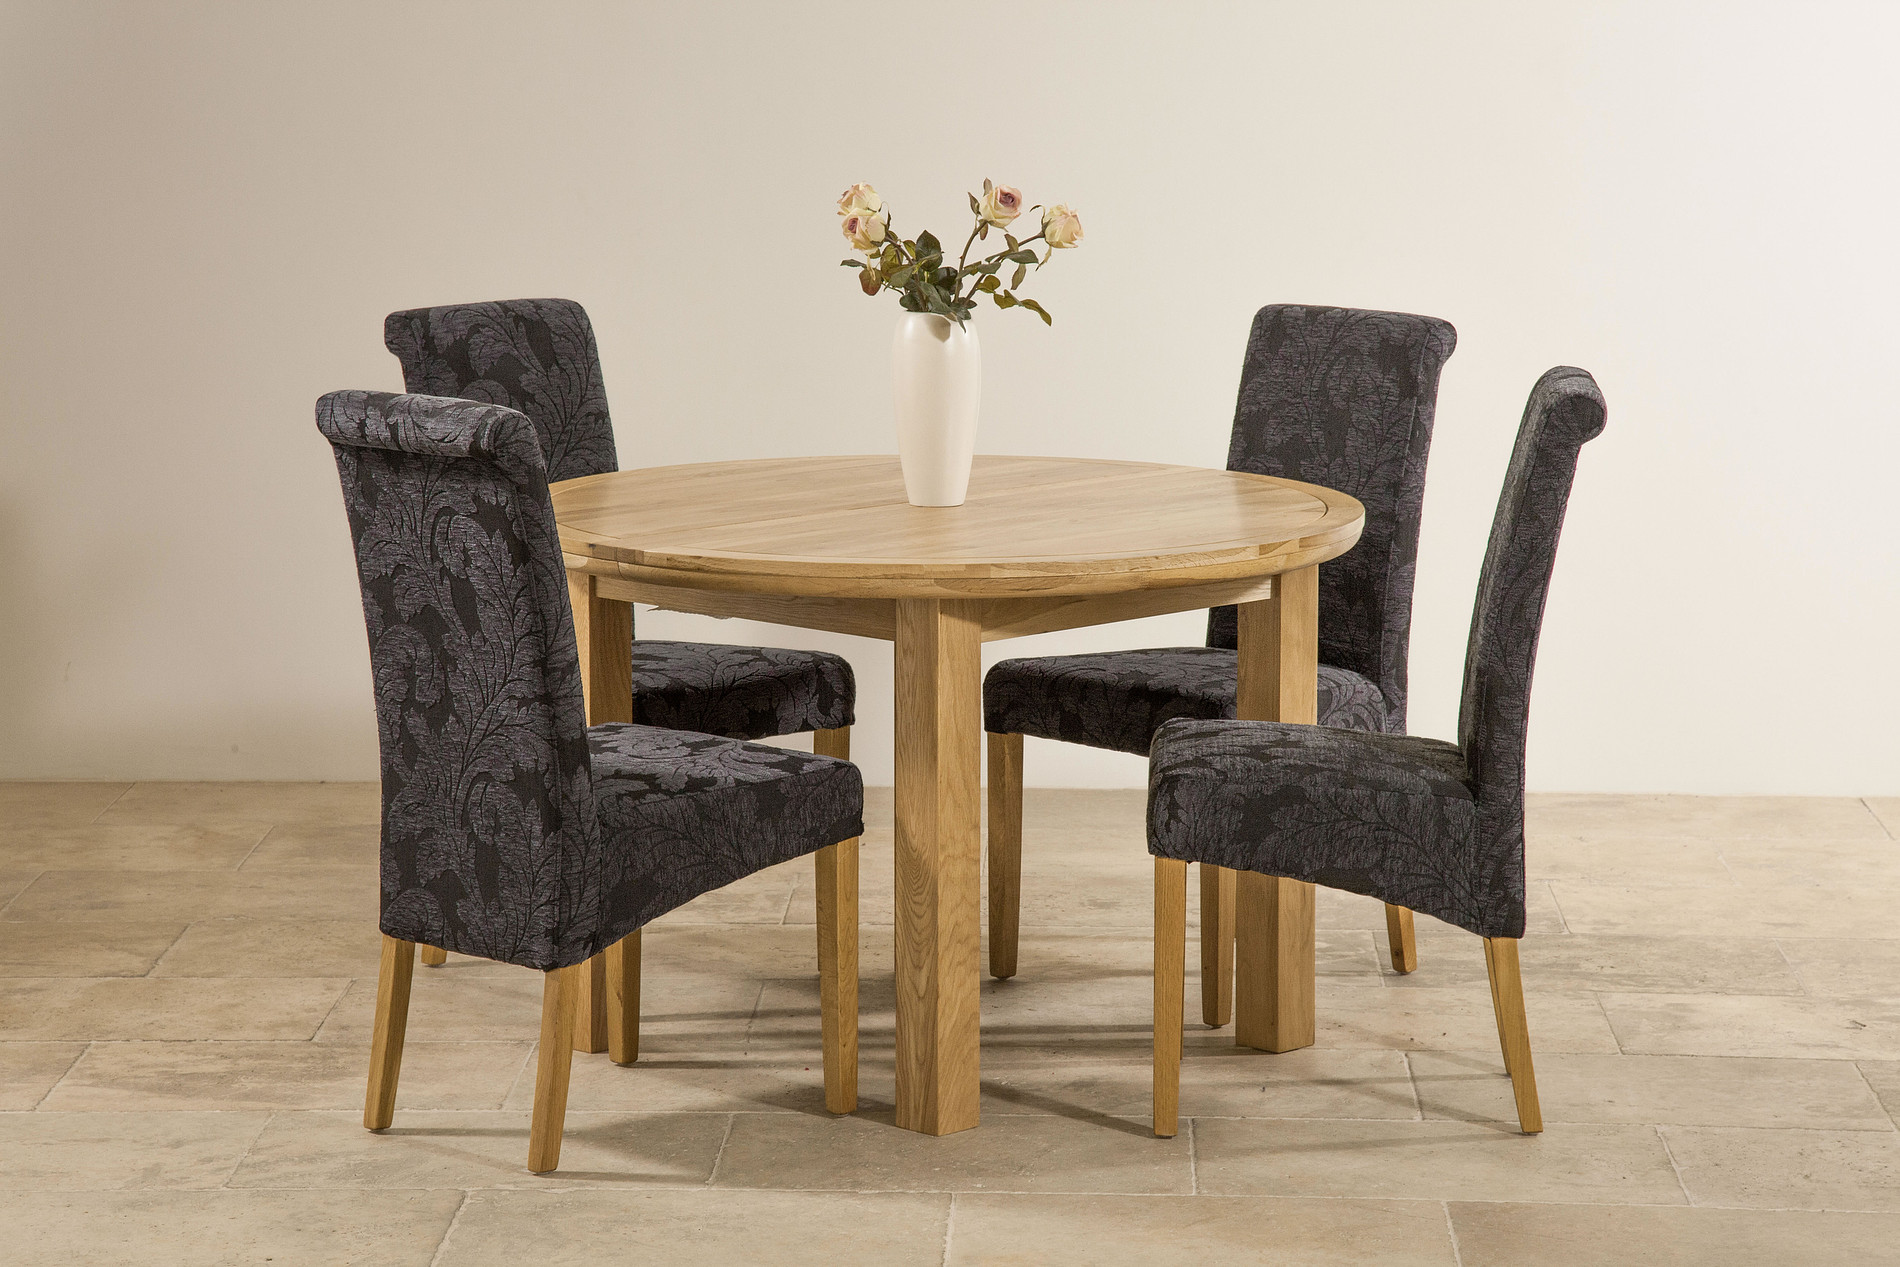 Navy Blue Dining Chairs 5ft 3 Quot Solid Oak Round Extending Dining Table 43 4 Scroll